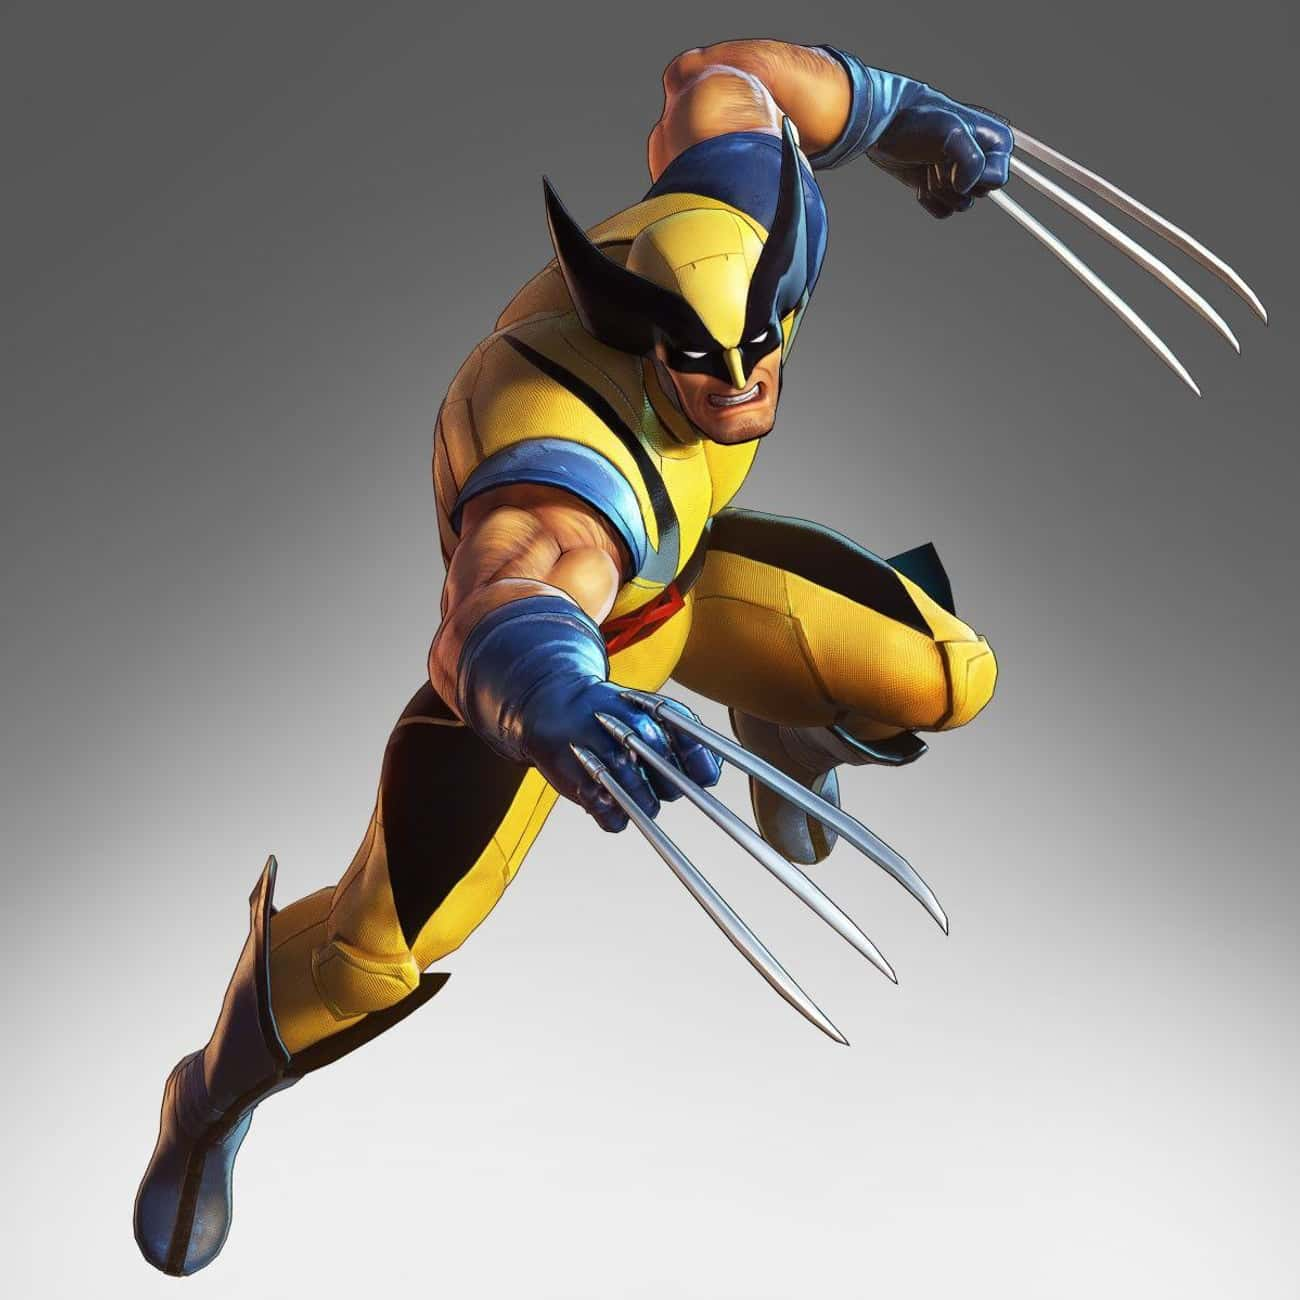 Wolverine is listed (or ranked) 2 on the list All 'Marvel Ultimate Alliance 3' Characters, Ranked